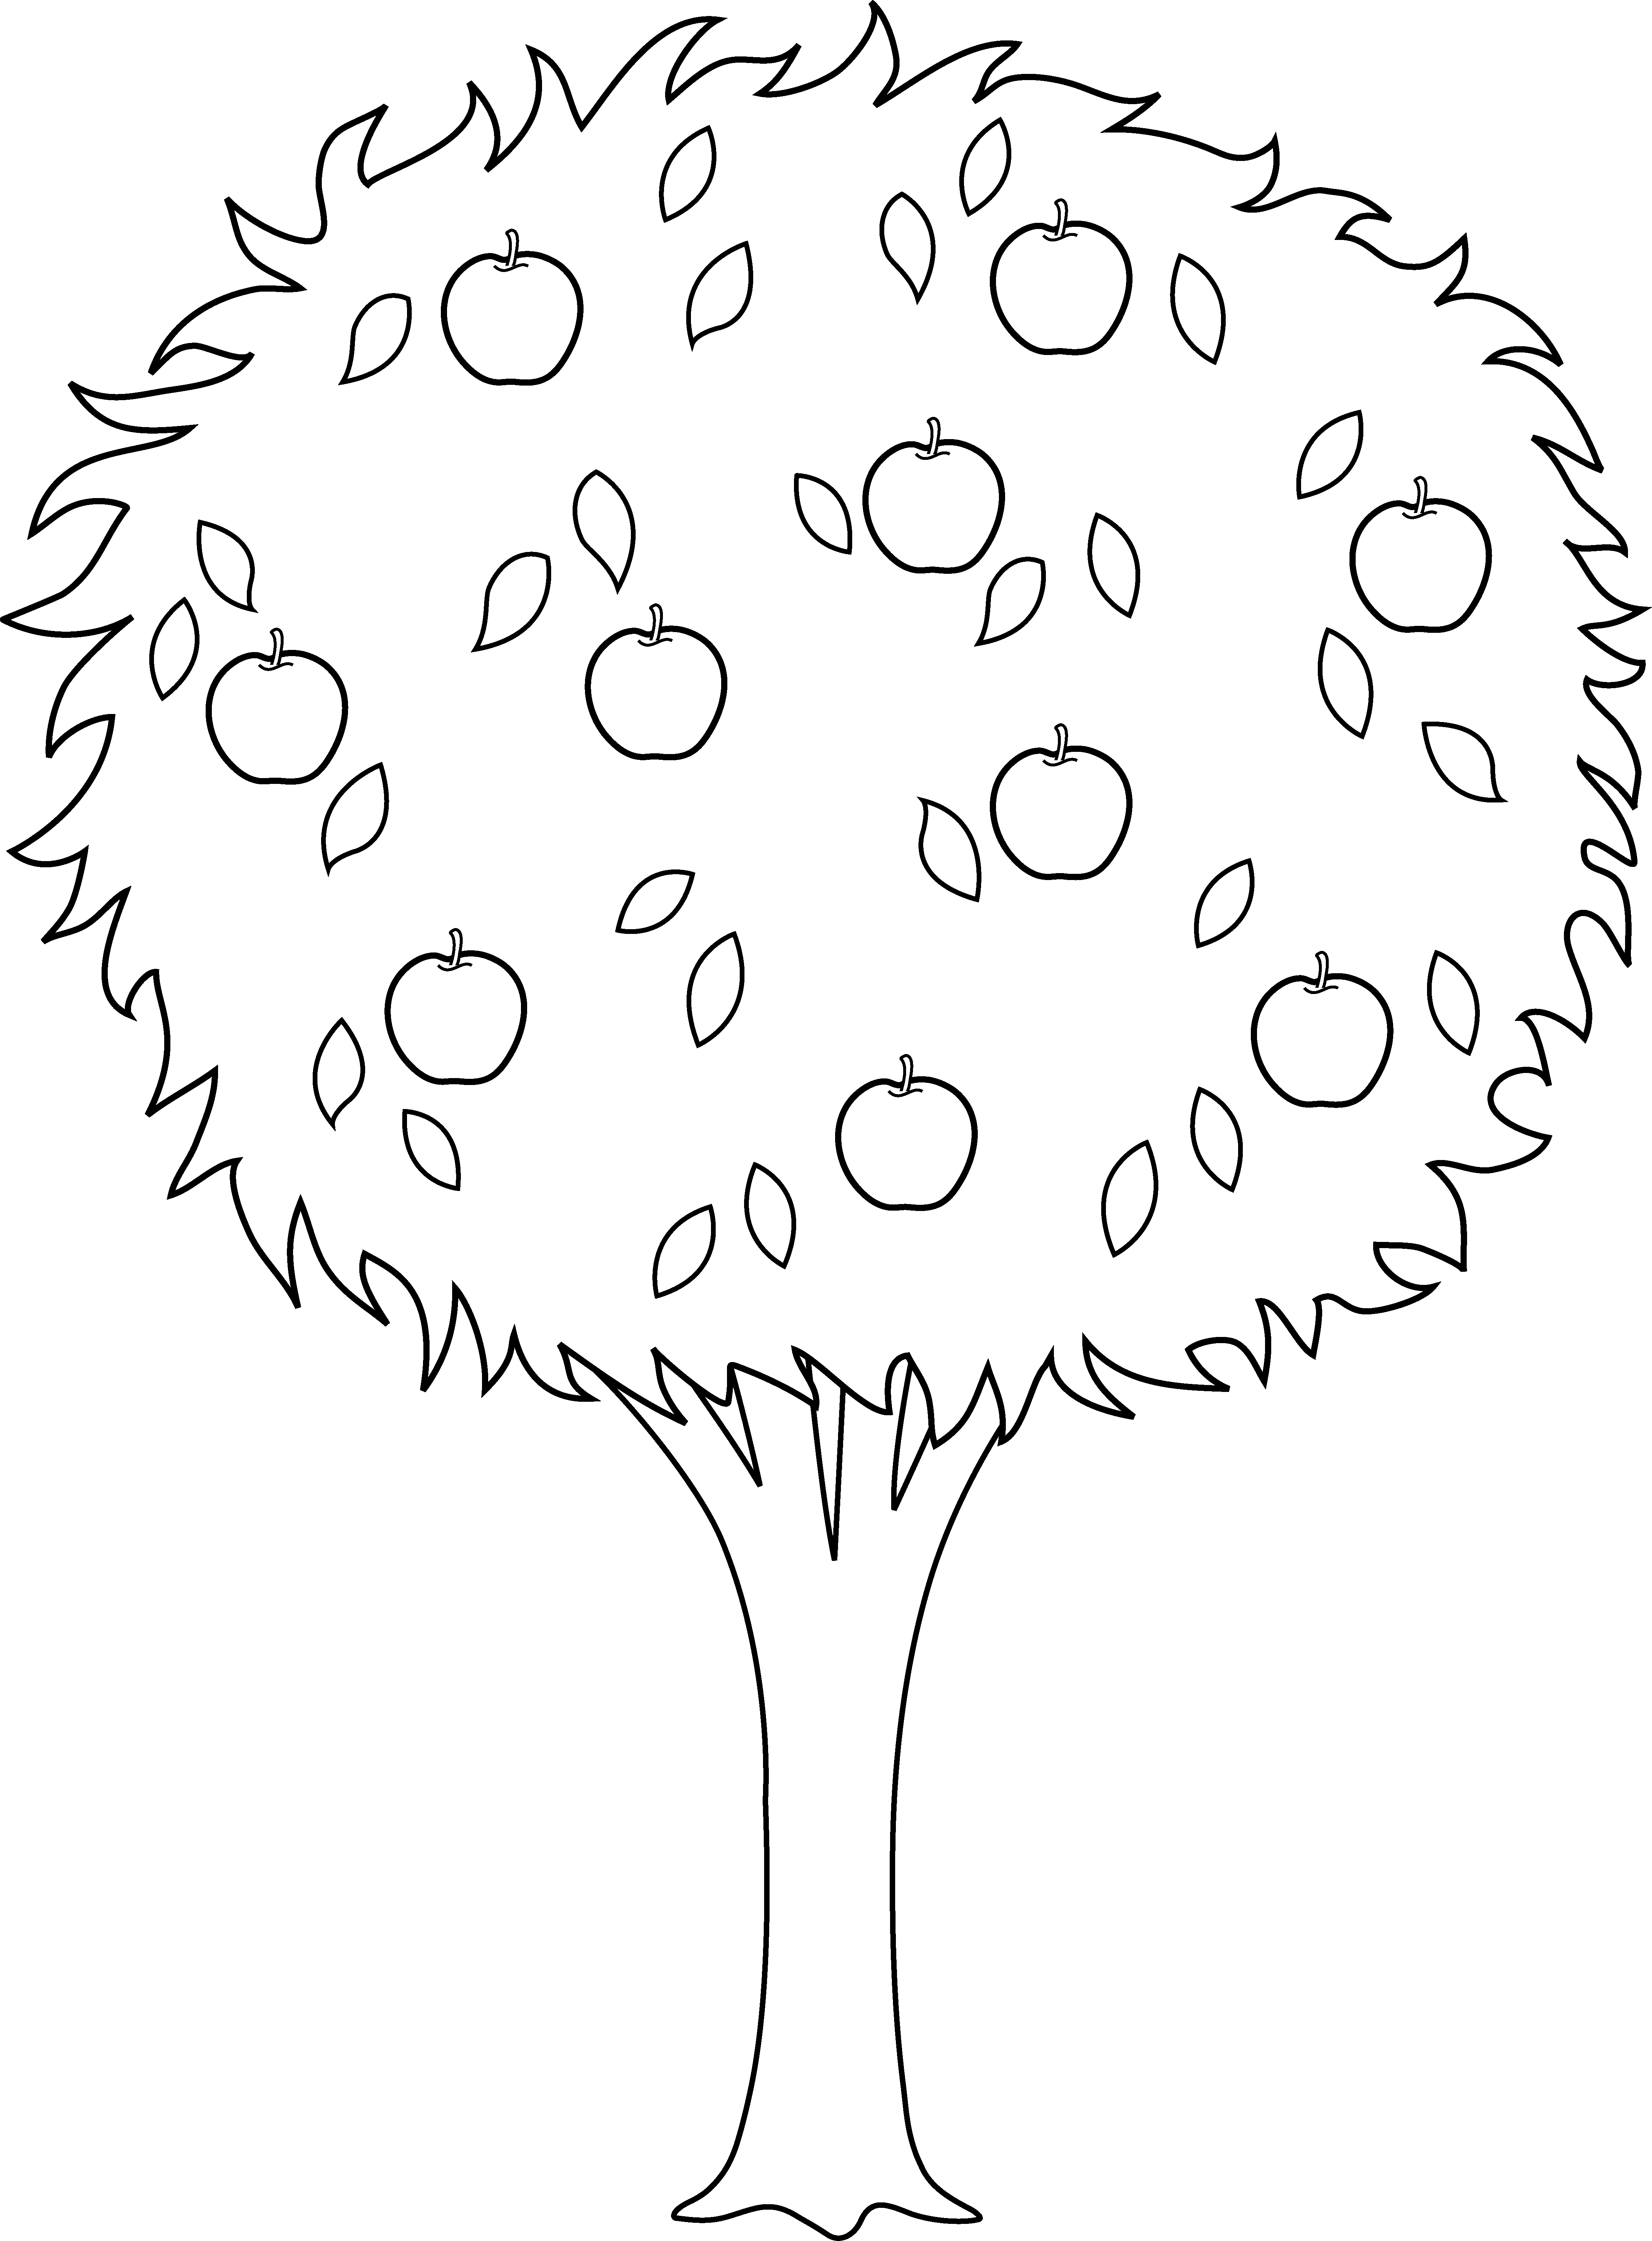 Bud drawing black and white. Apple tree line at